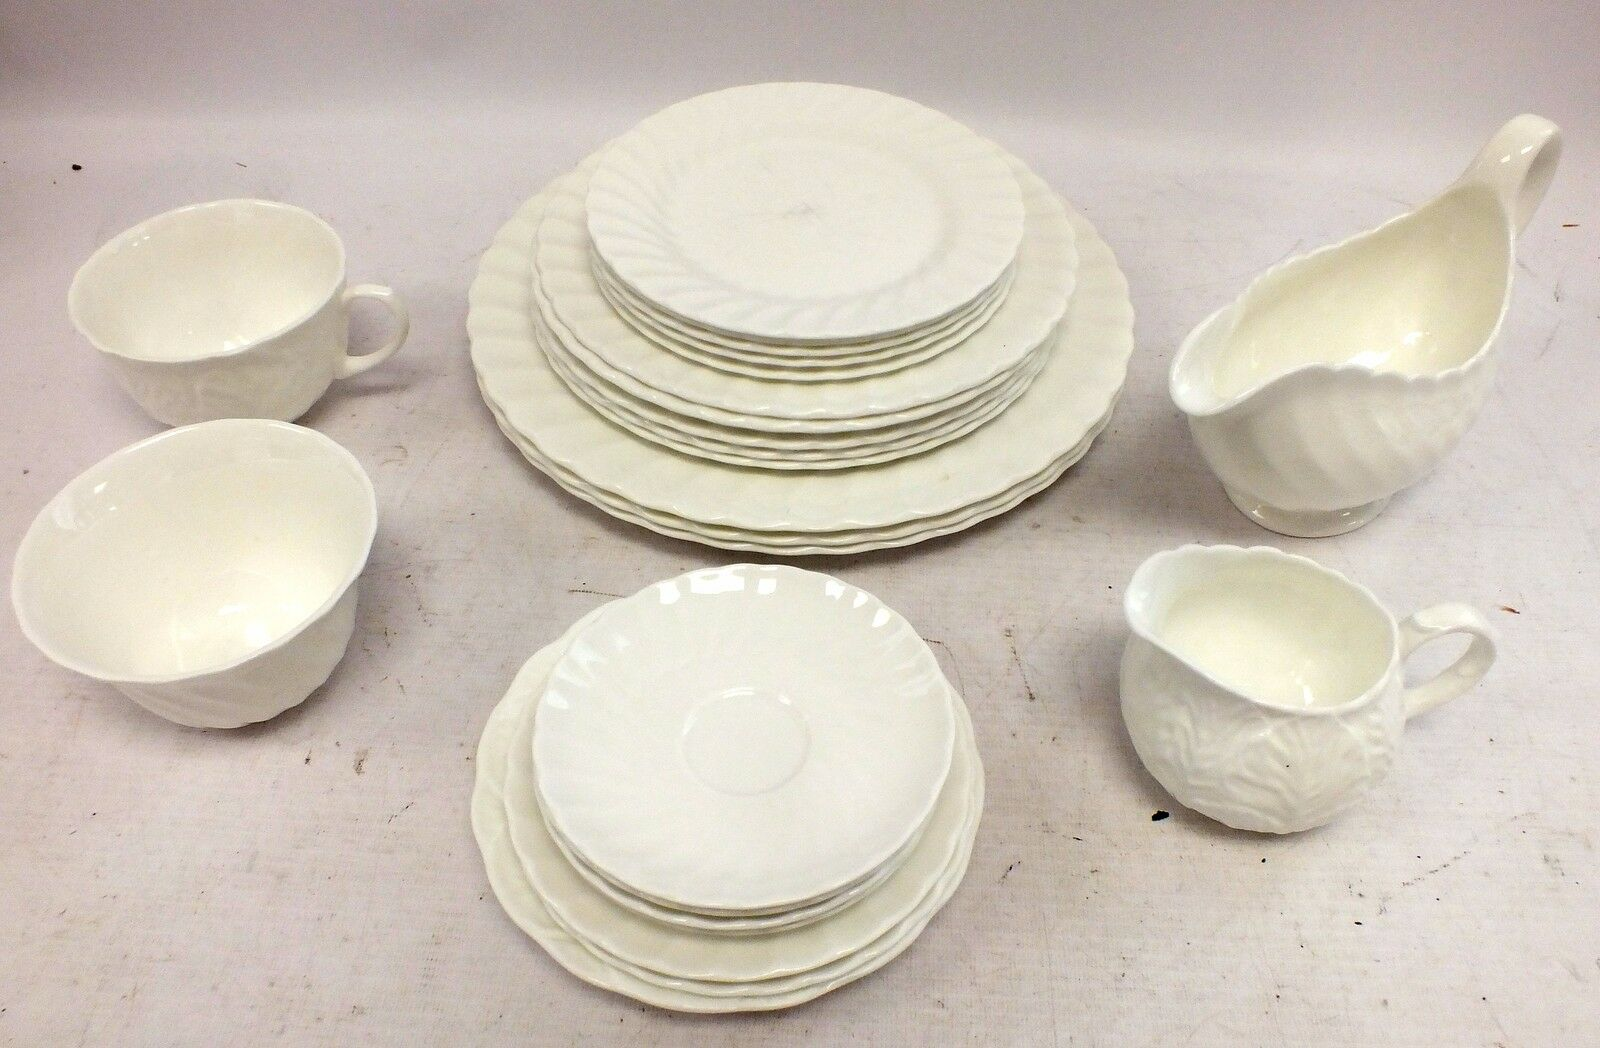 24 Piece Wedgwood Bone China Dinner Set Countryware C72